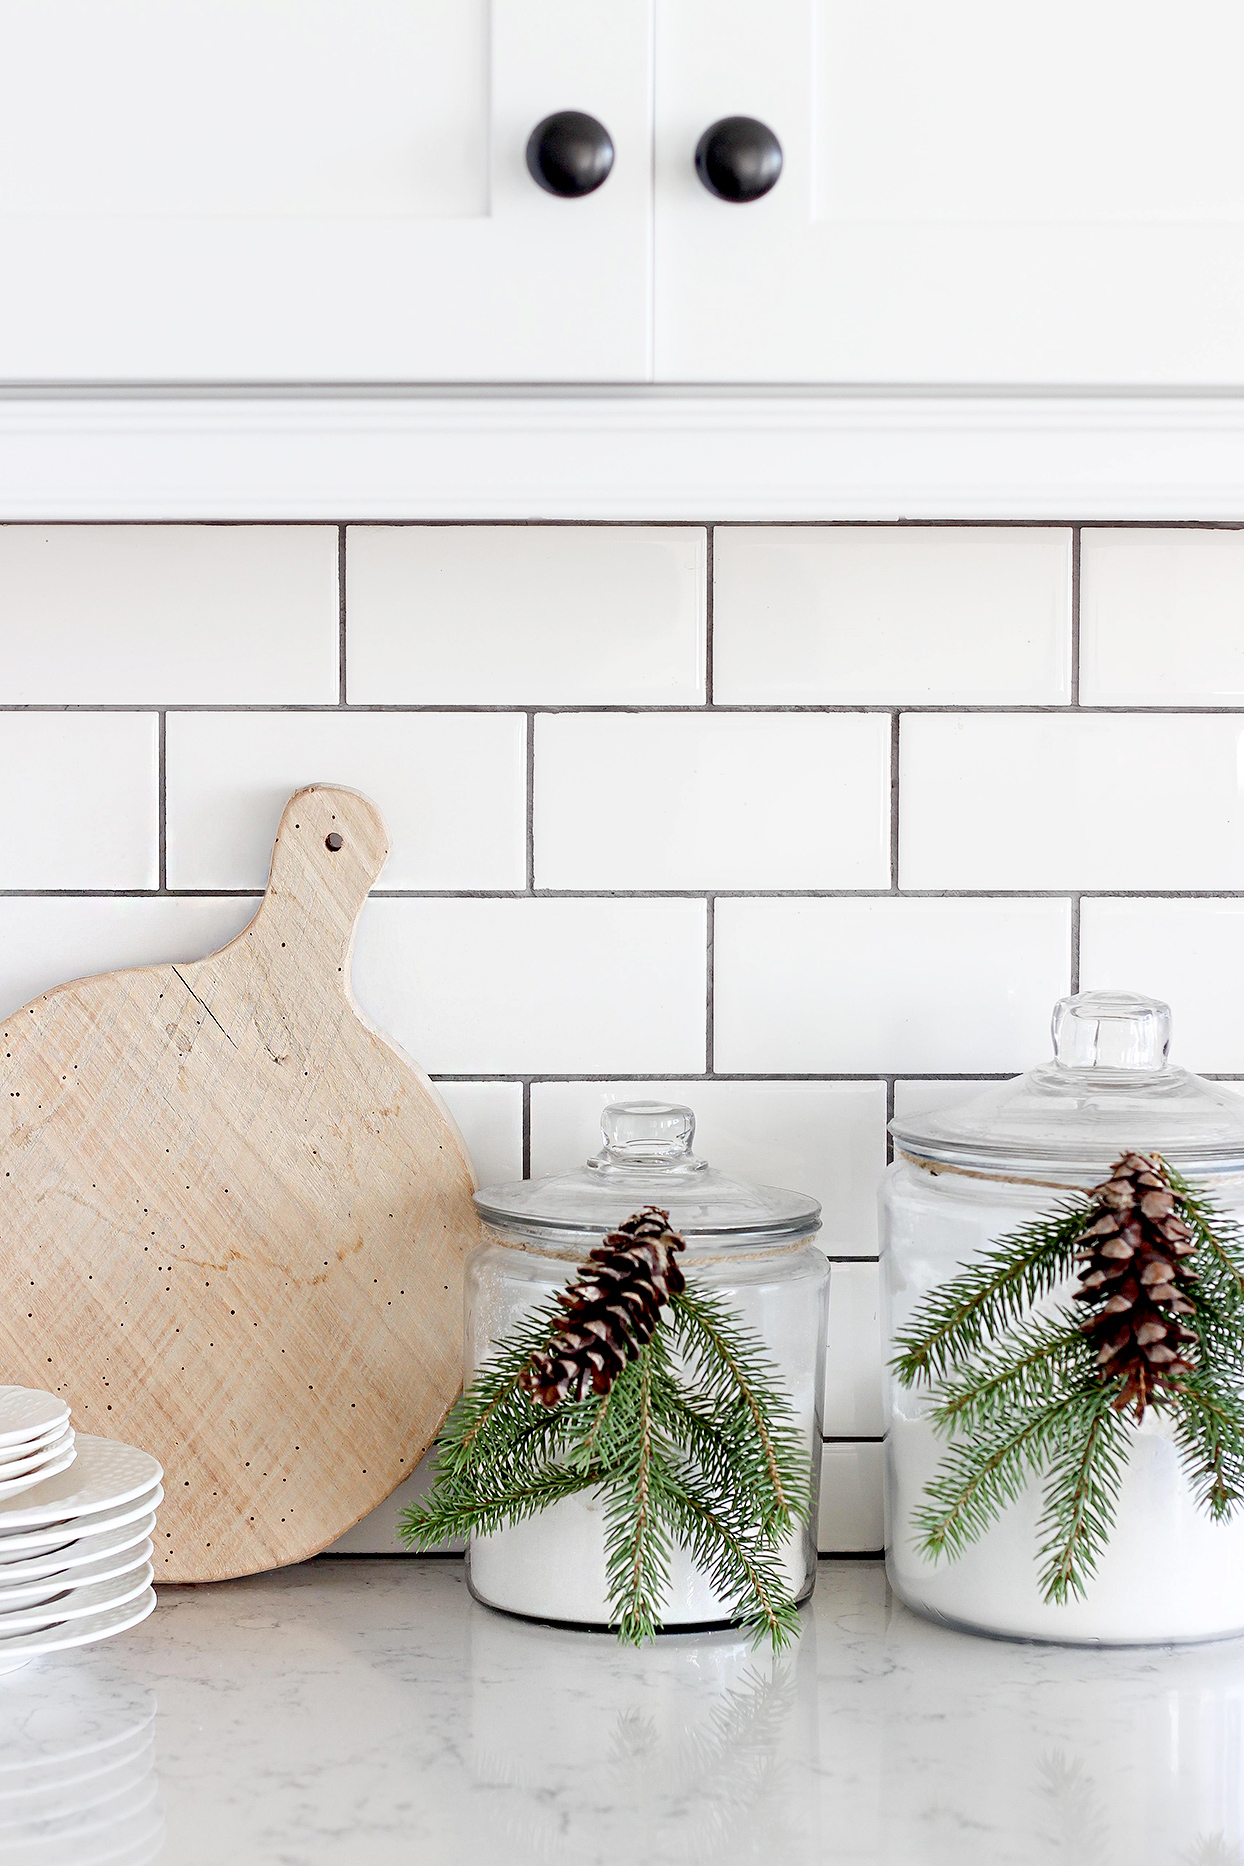 Kitchen counter with evergreen and pinecone decoration